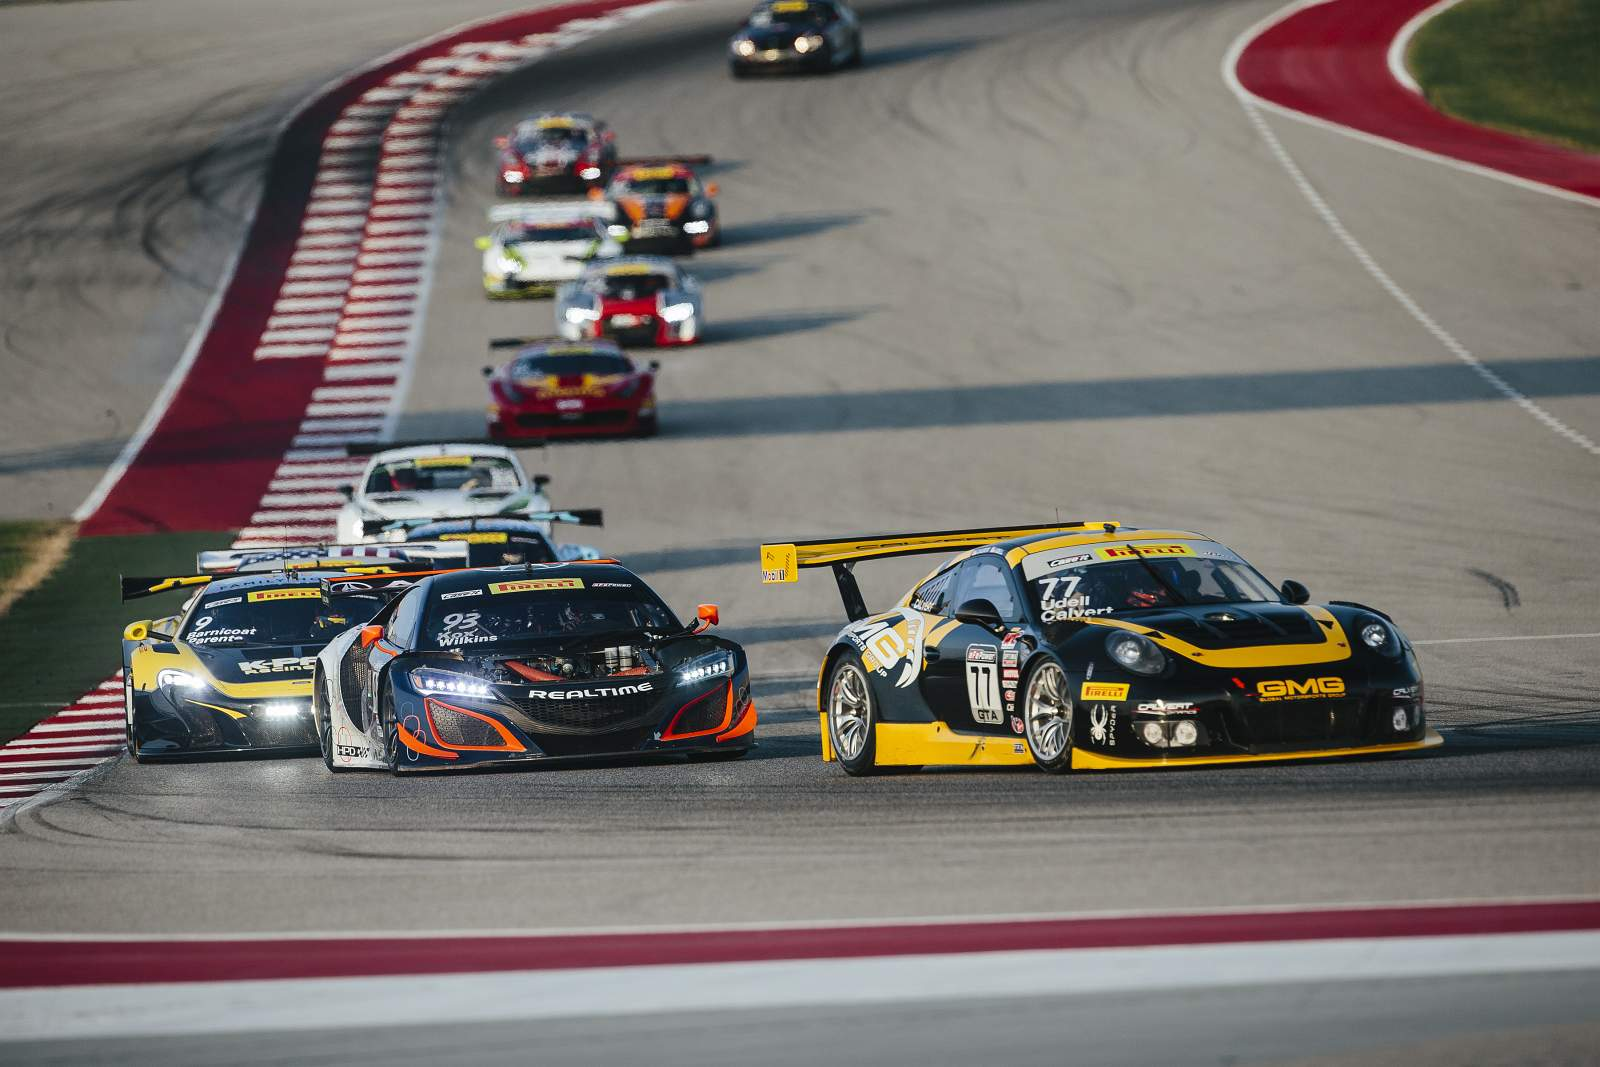 peter-kox-realtime-racing-pirelli-world-challenge-cota--009